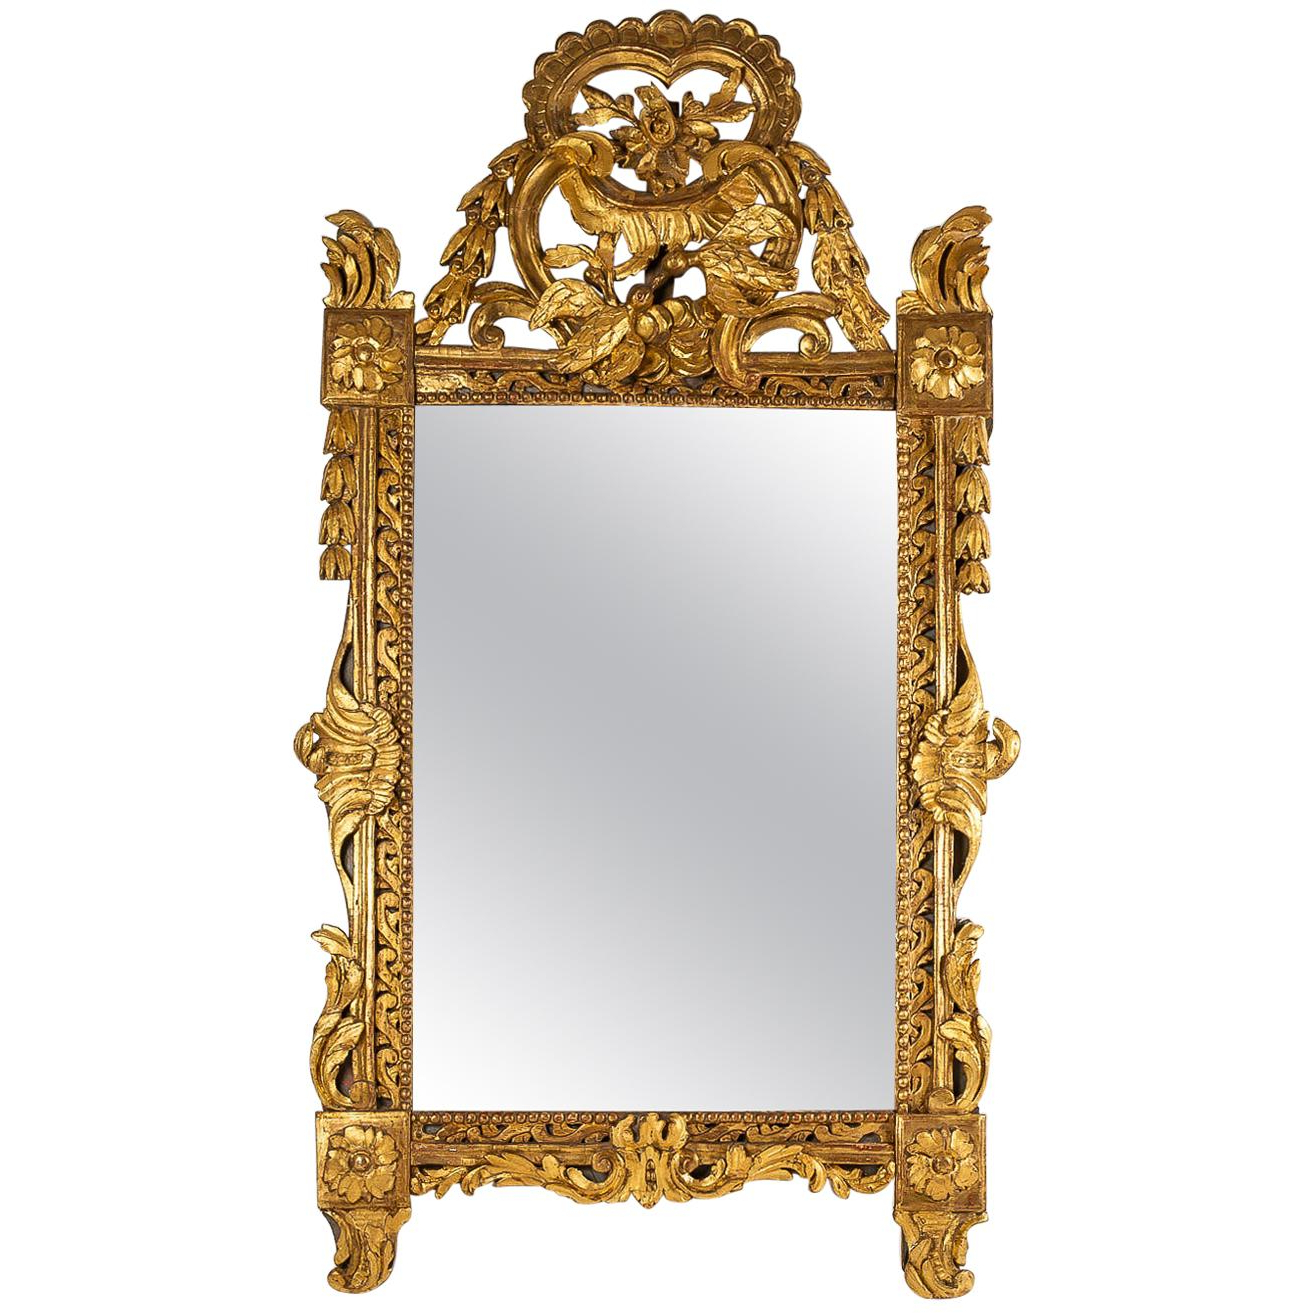 Antique And Vintage Mirrors – 16,608 For Sale At 1stdibs Within Best And Newest Rectangle Antique Galvanized Metal Accent Mirrors (View 20 of 20)